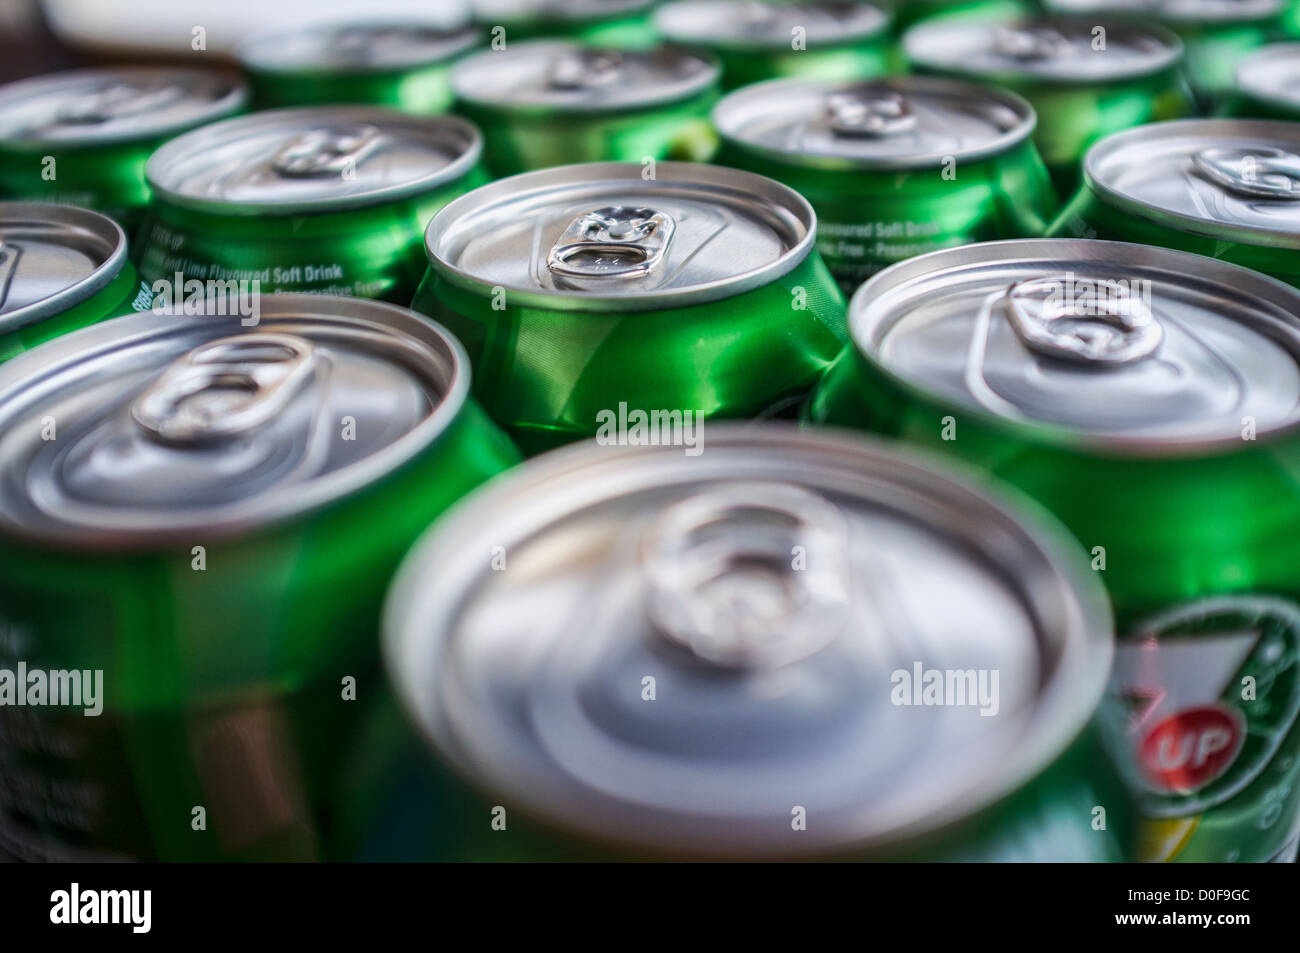 Cans of 7up Drink, Showing Stay-on-Tab's. - Stock Image